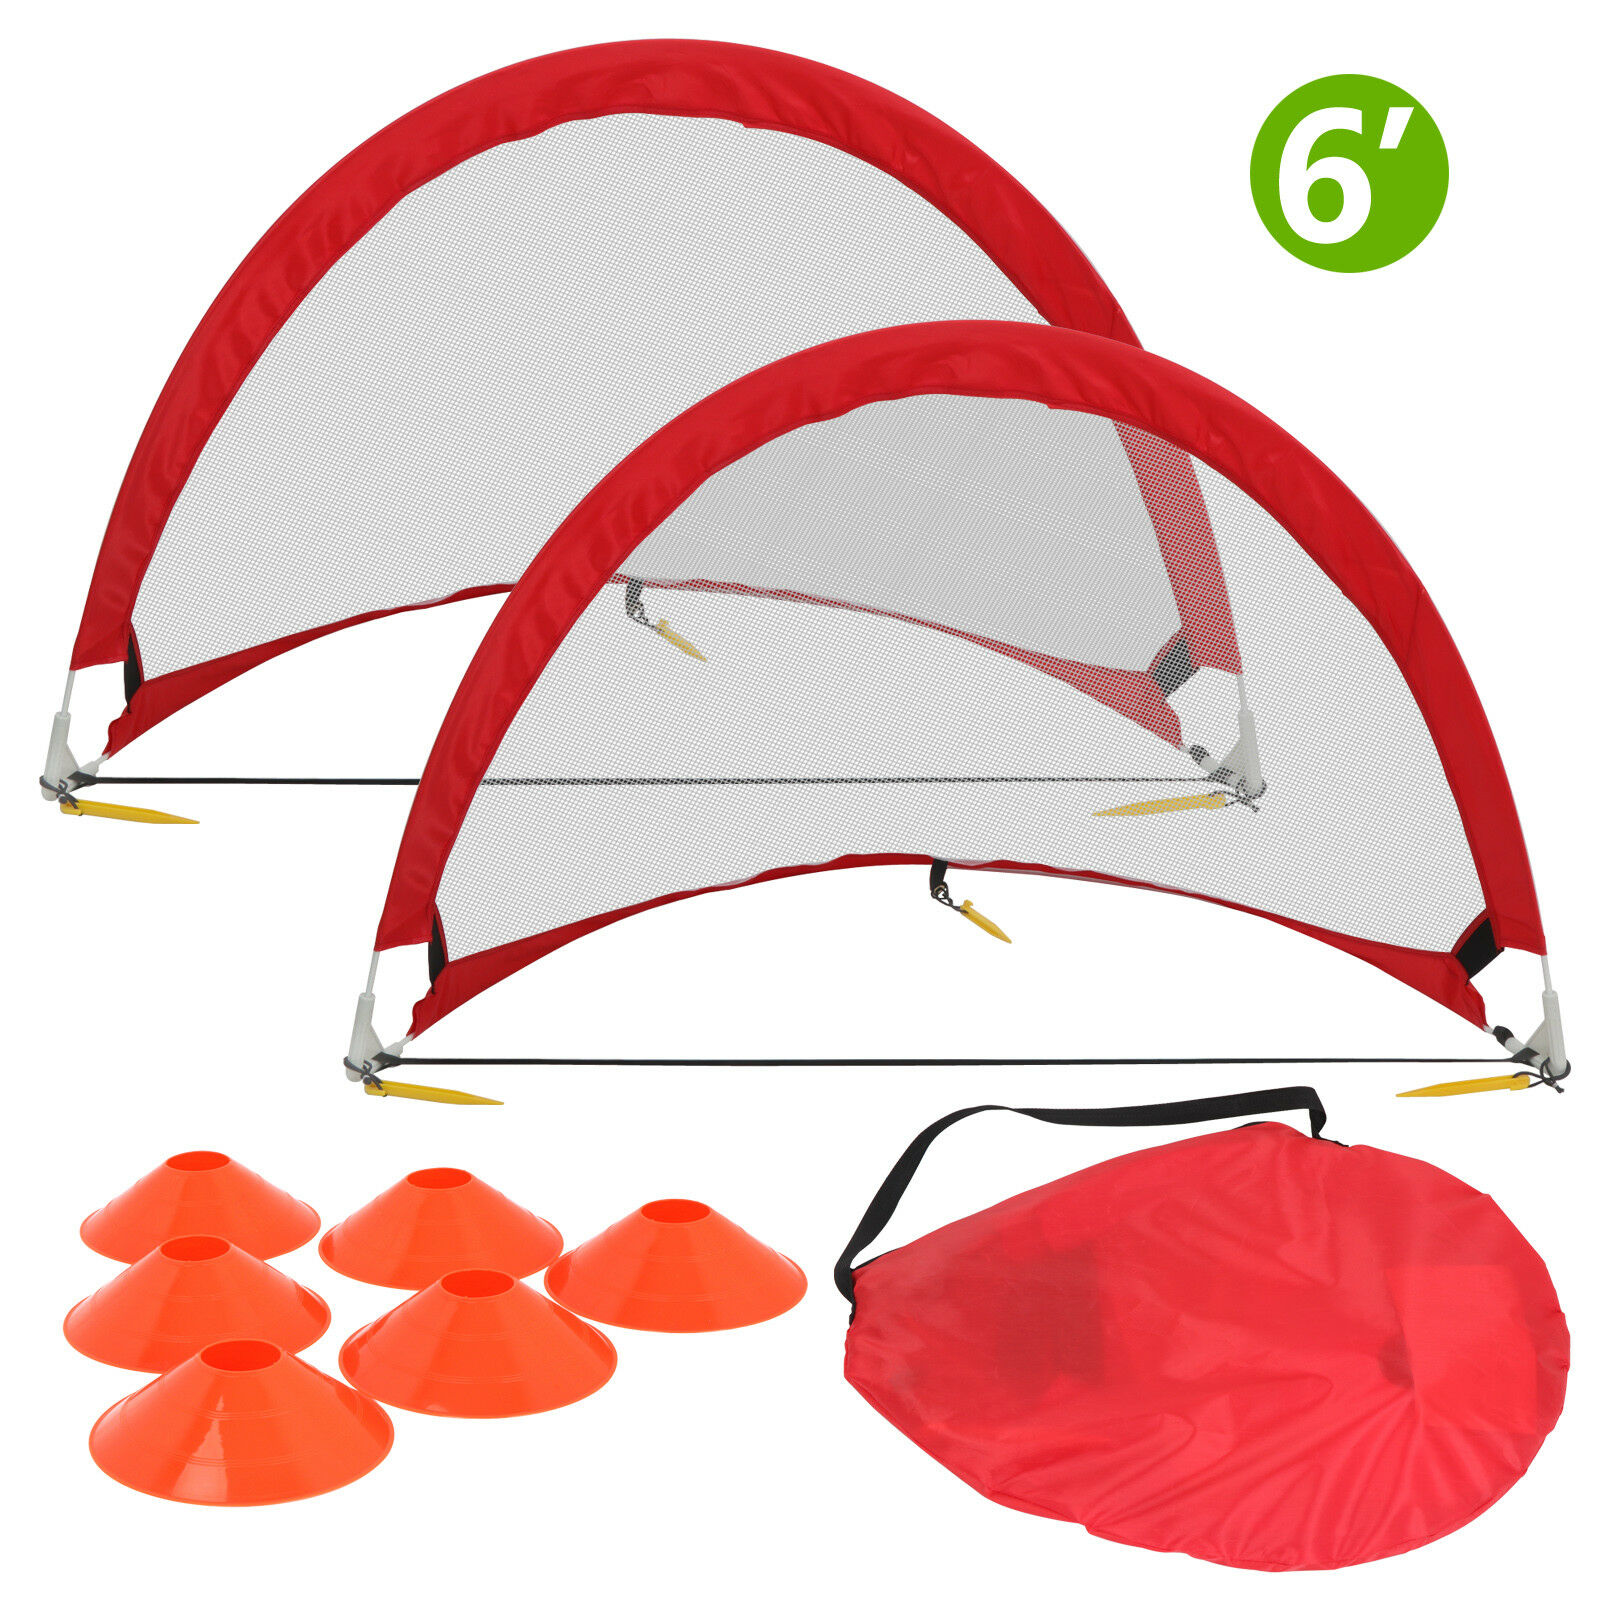 Pop-Up Soccer Goal With Cone, Case - 6 Feet, Red, Pair Of Set In -